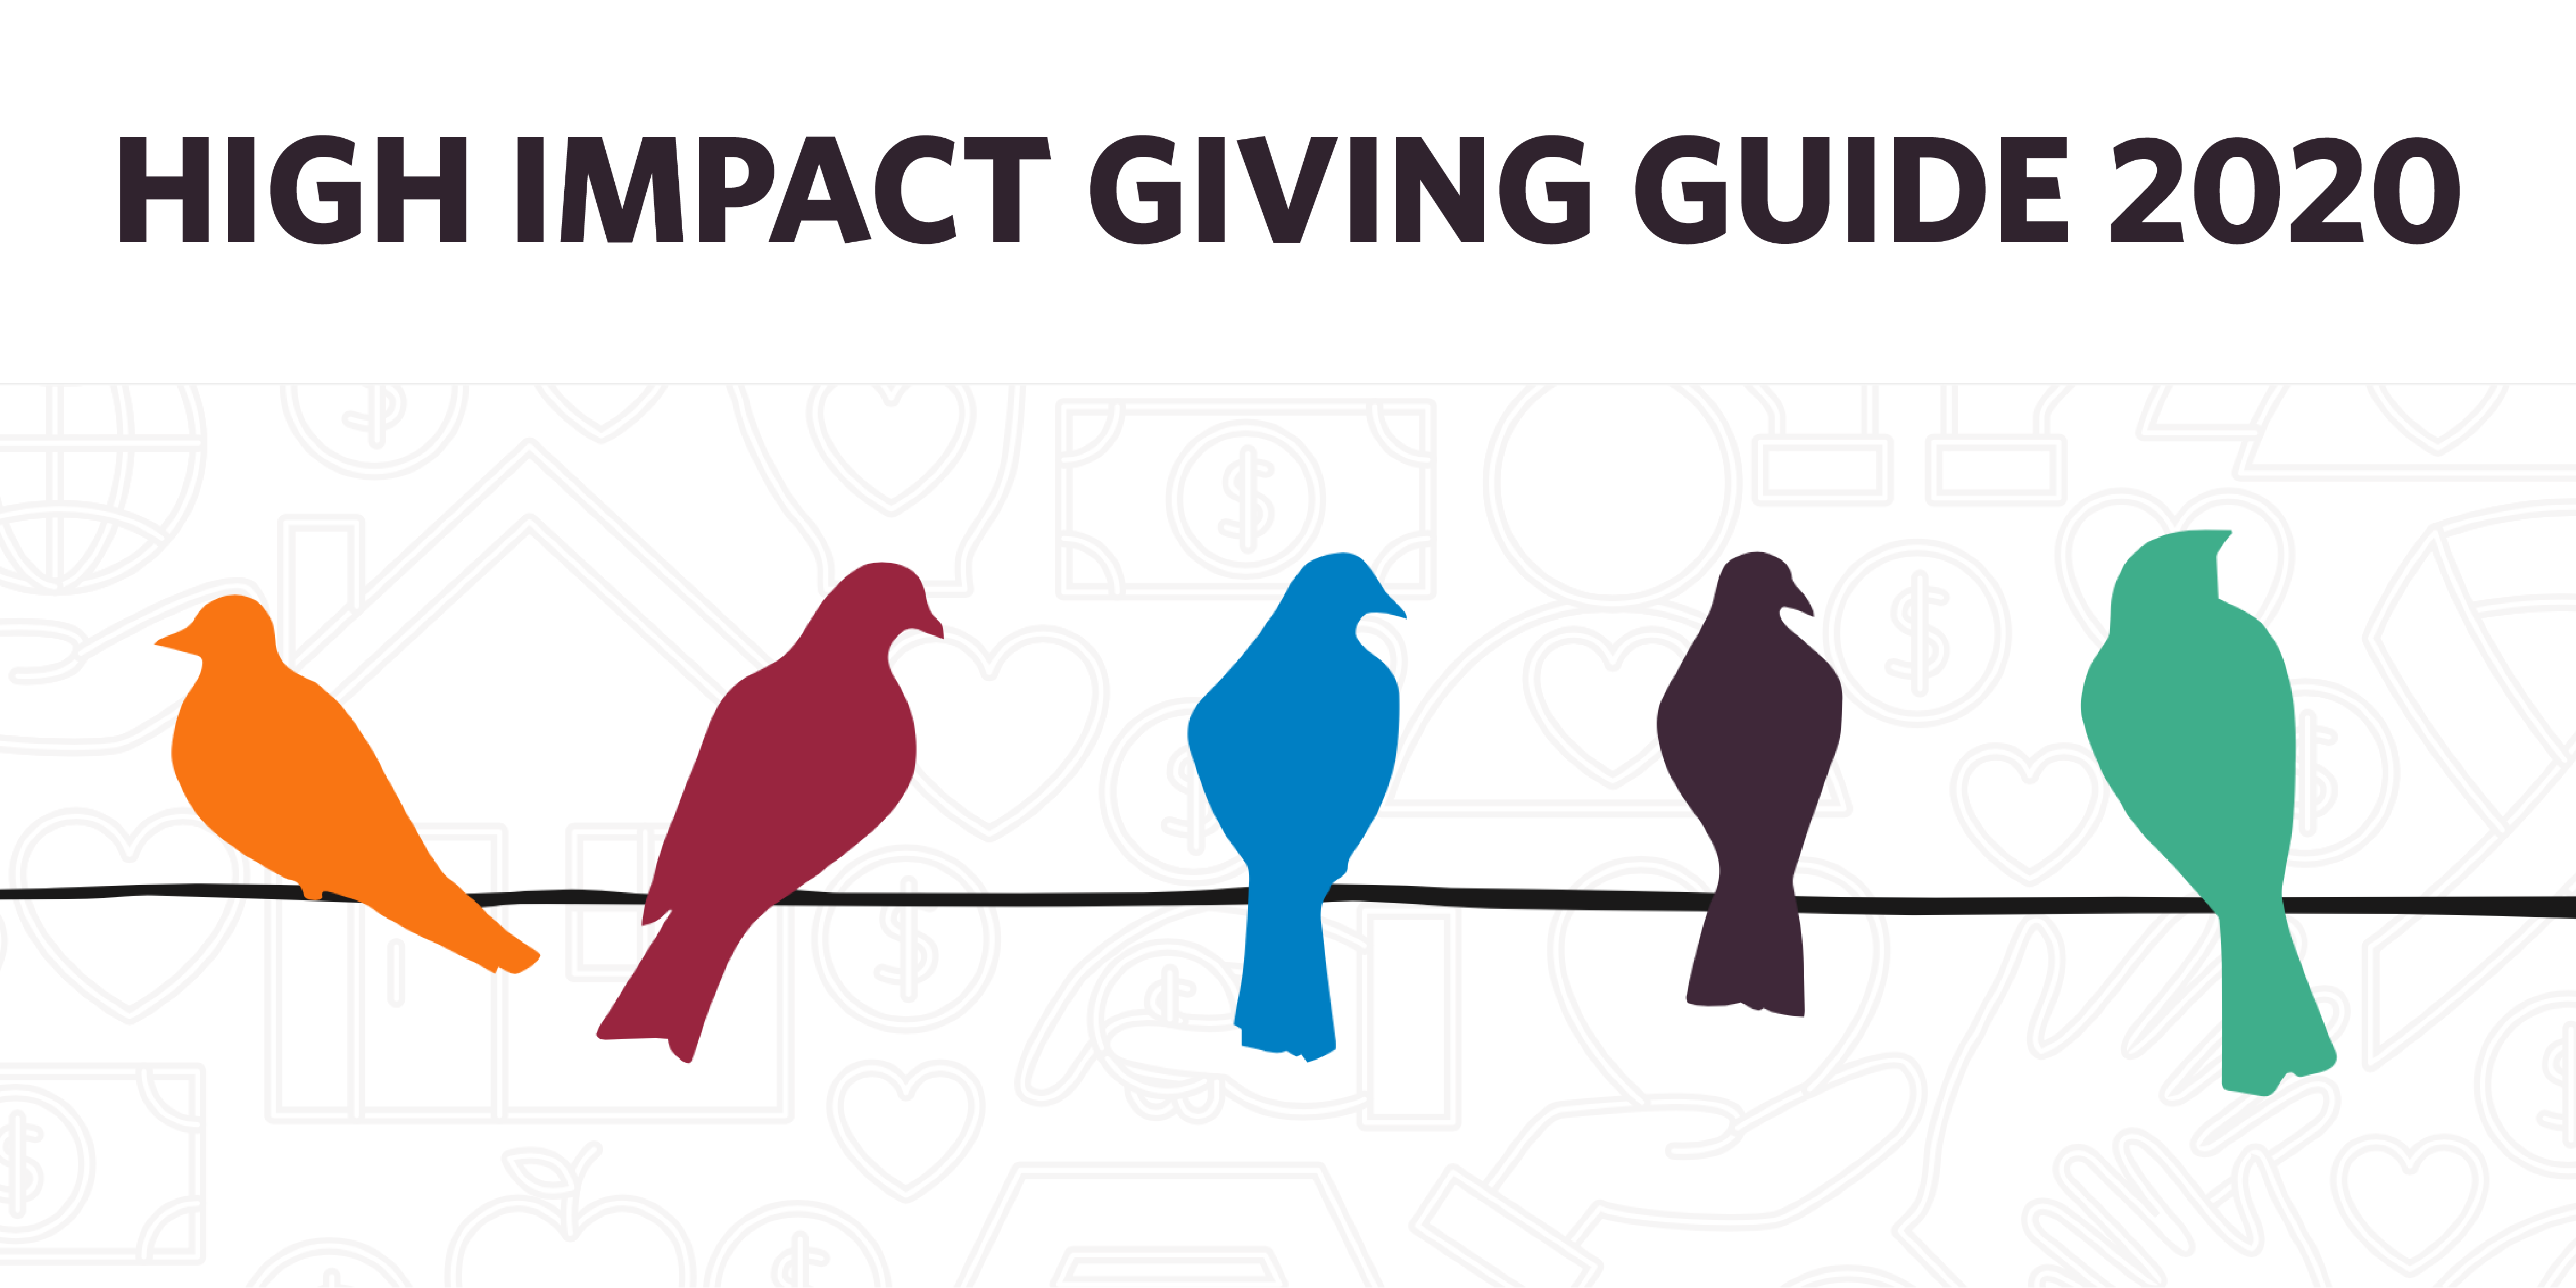 2020 High Impact Giving Guide